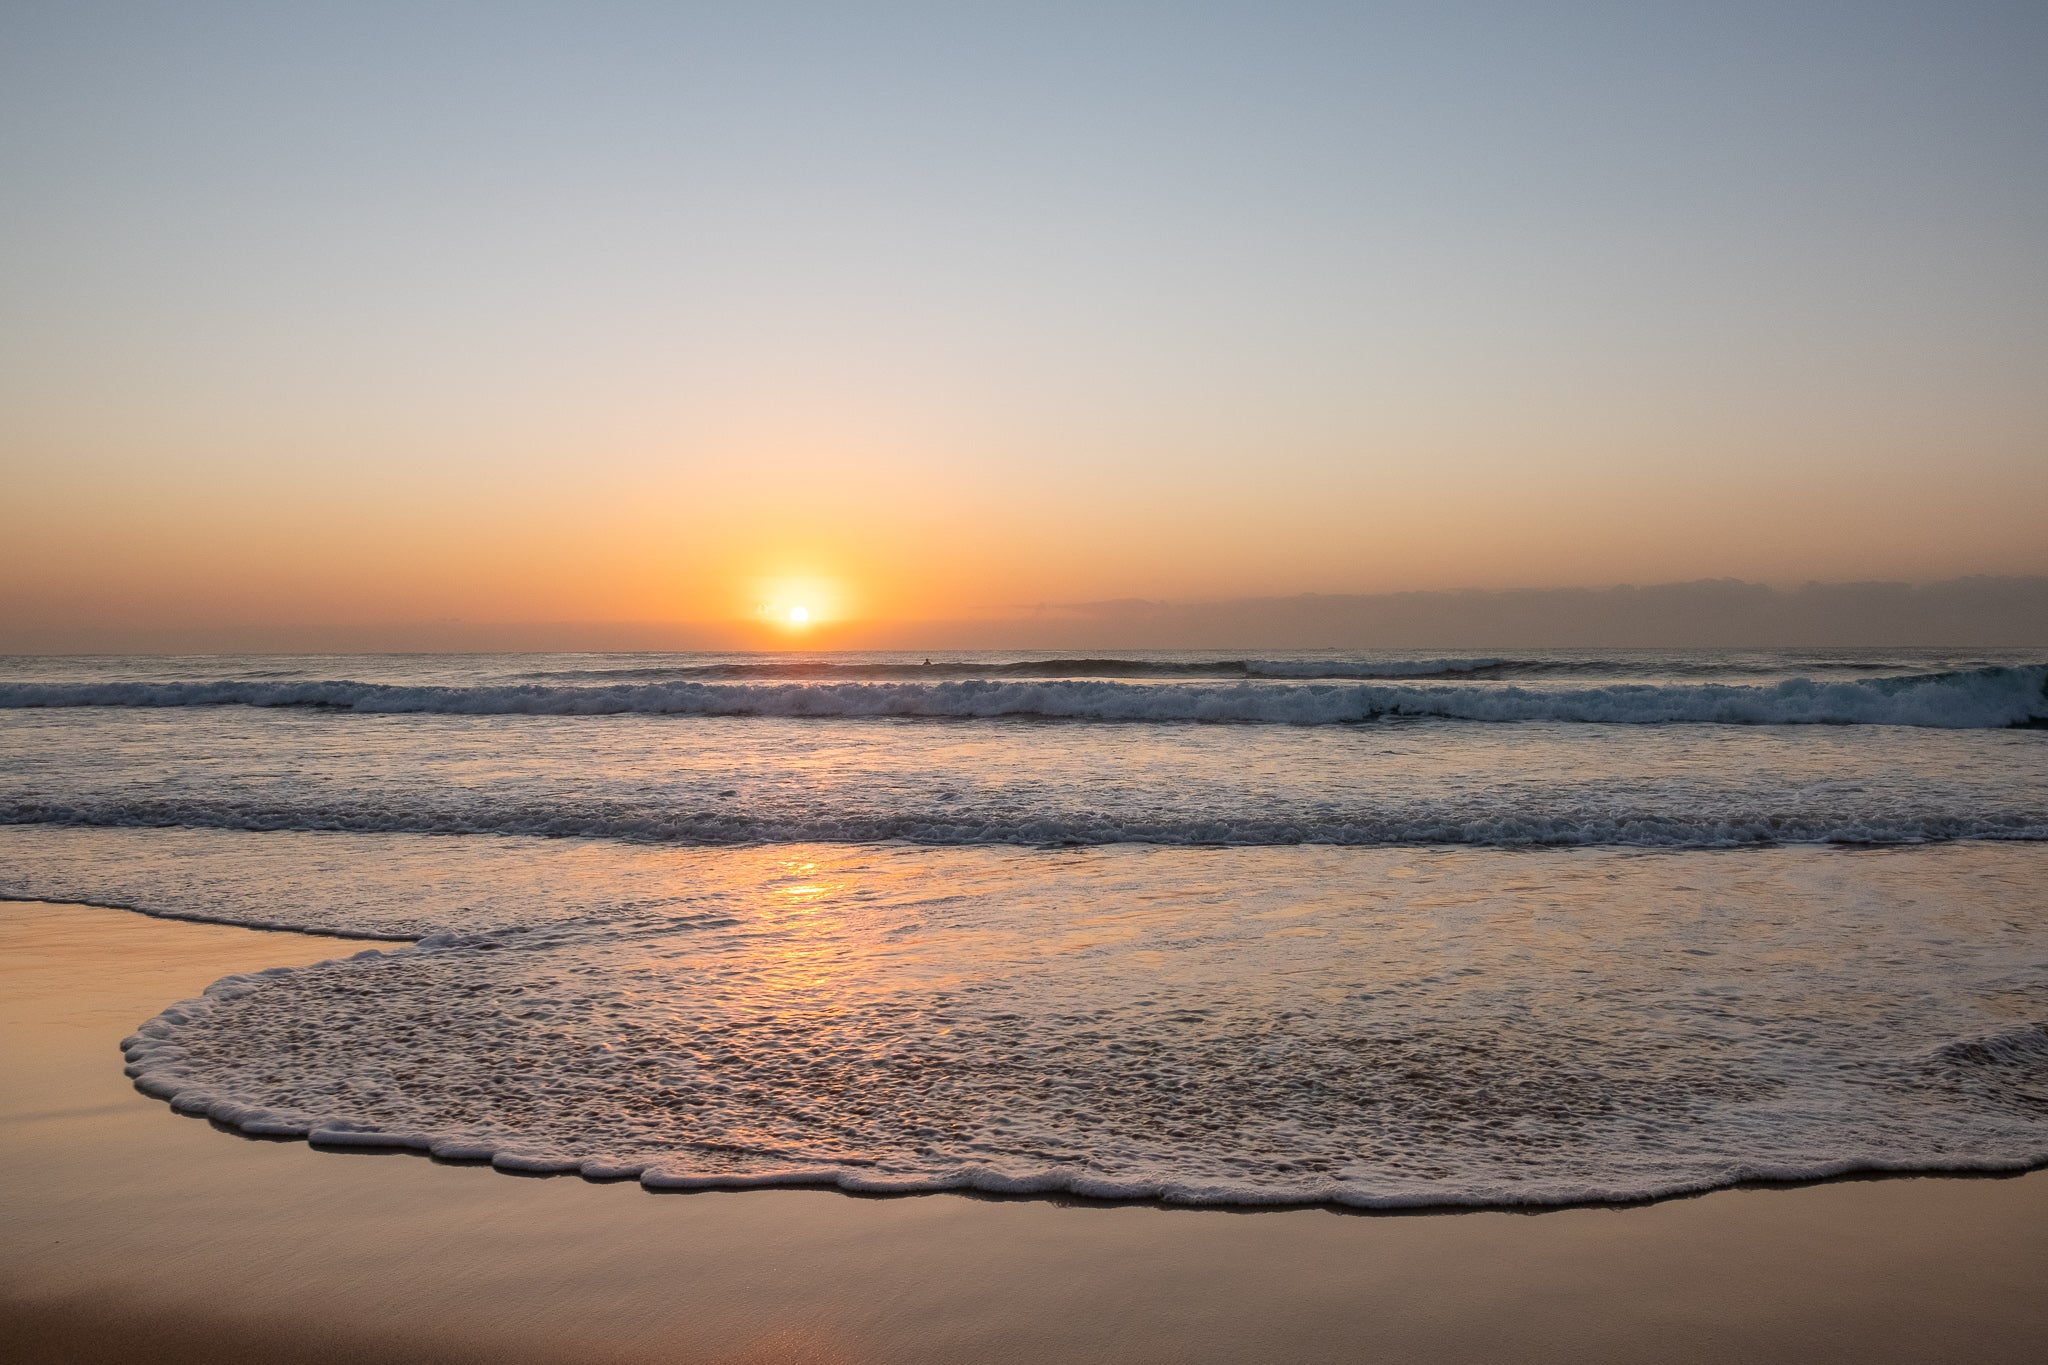 Sunrise photo from the 29th September 2019 at Manly Beach in Sydney